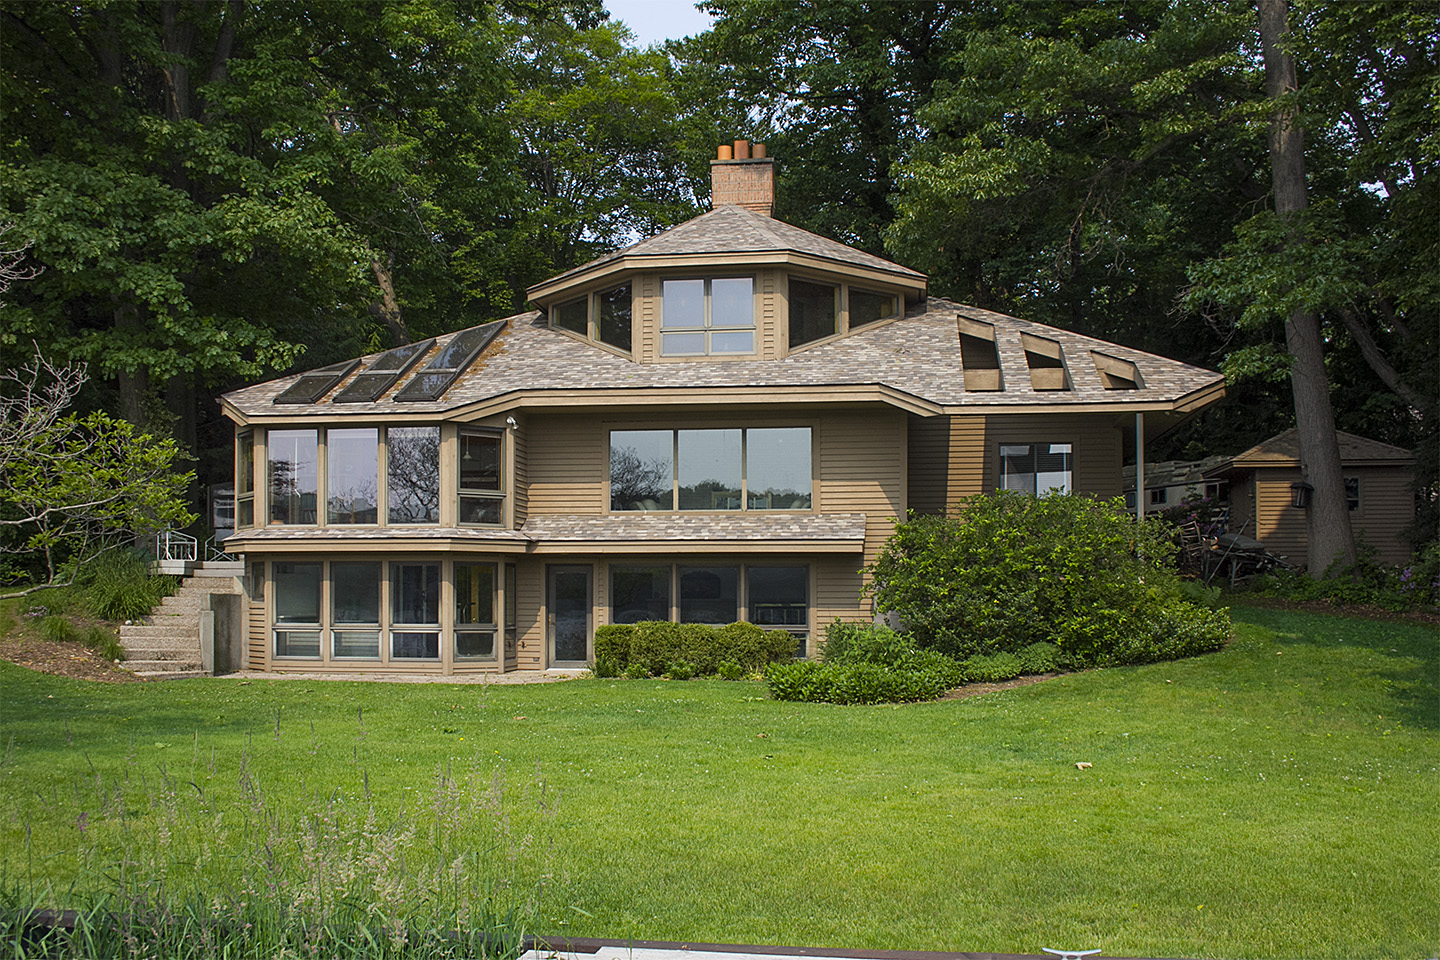 Single Family Home for Sale at Refined Lake Michigan retreat 145 Crestwood Drive Holland, Michigan 49424 United States